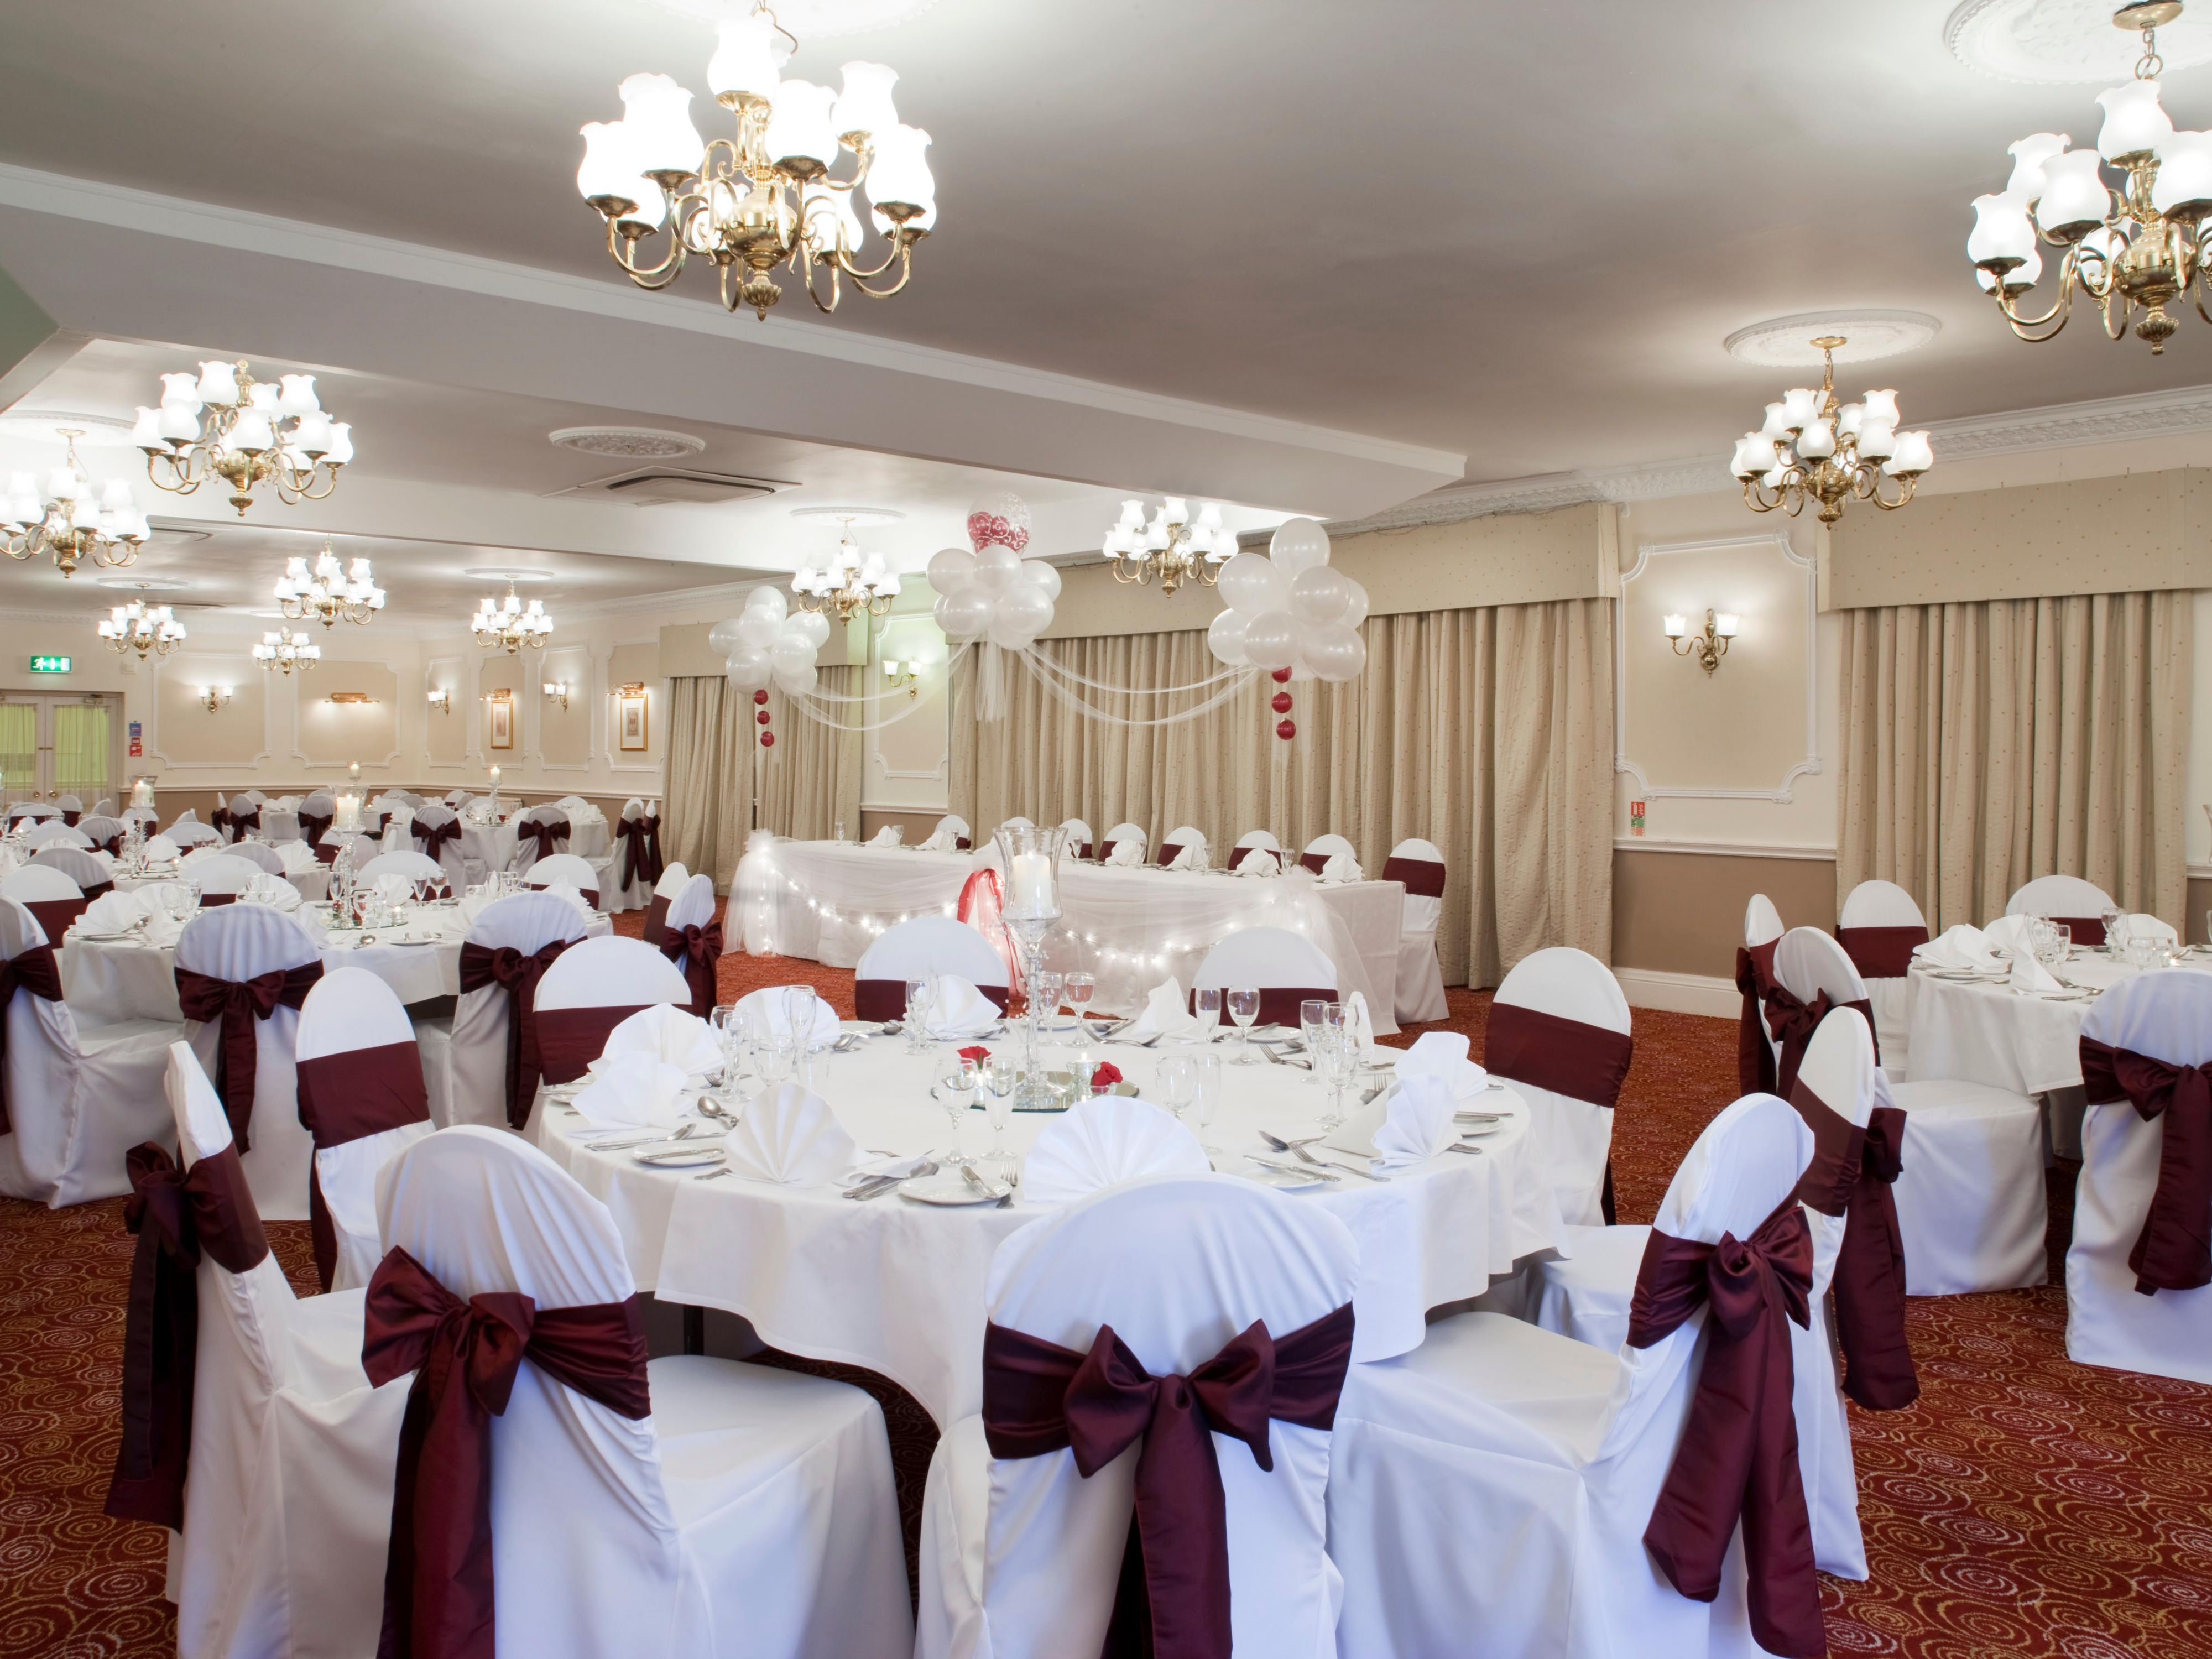 The Pastures Suite is a fabulous venue for any occasion